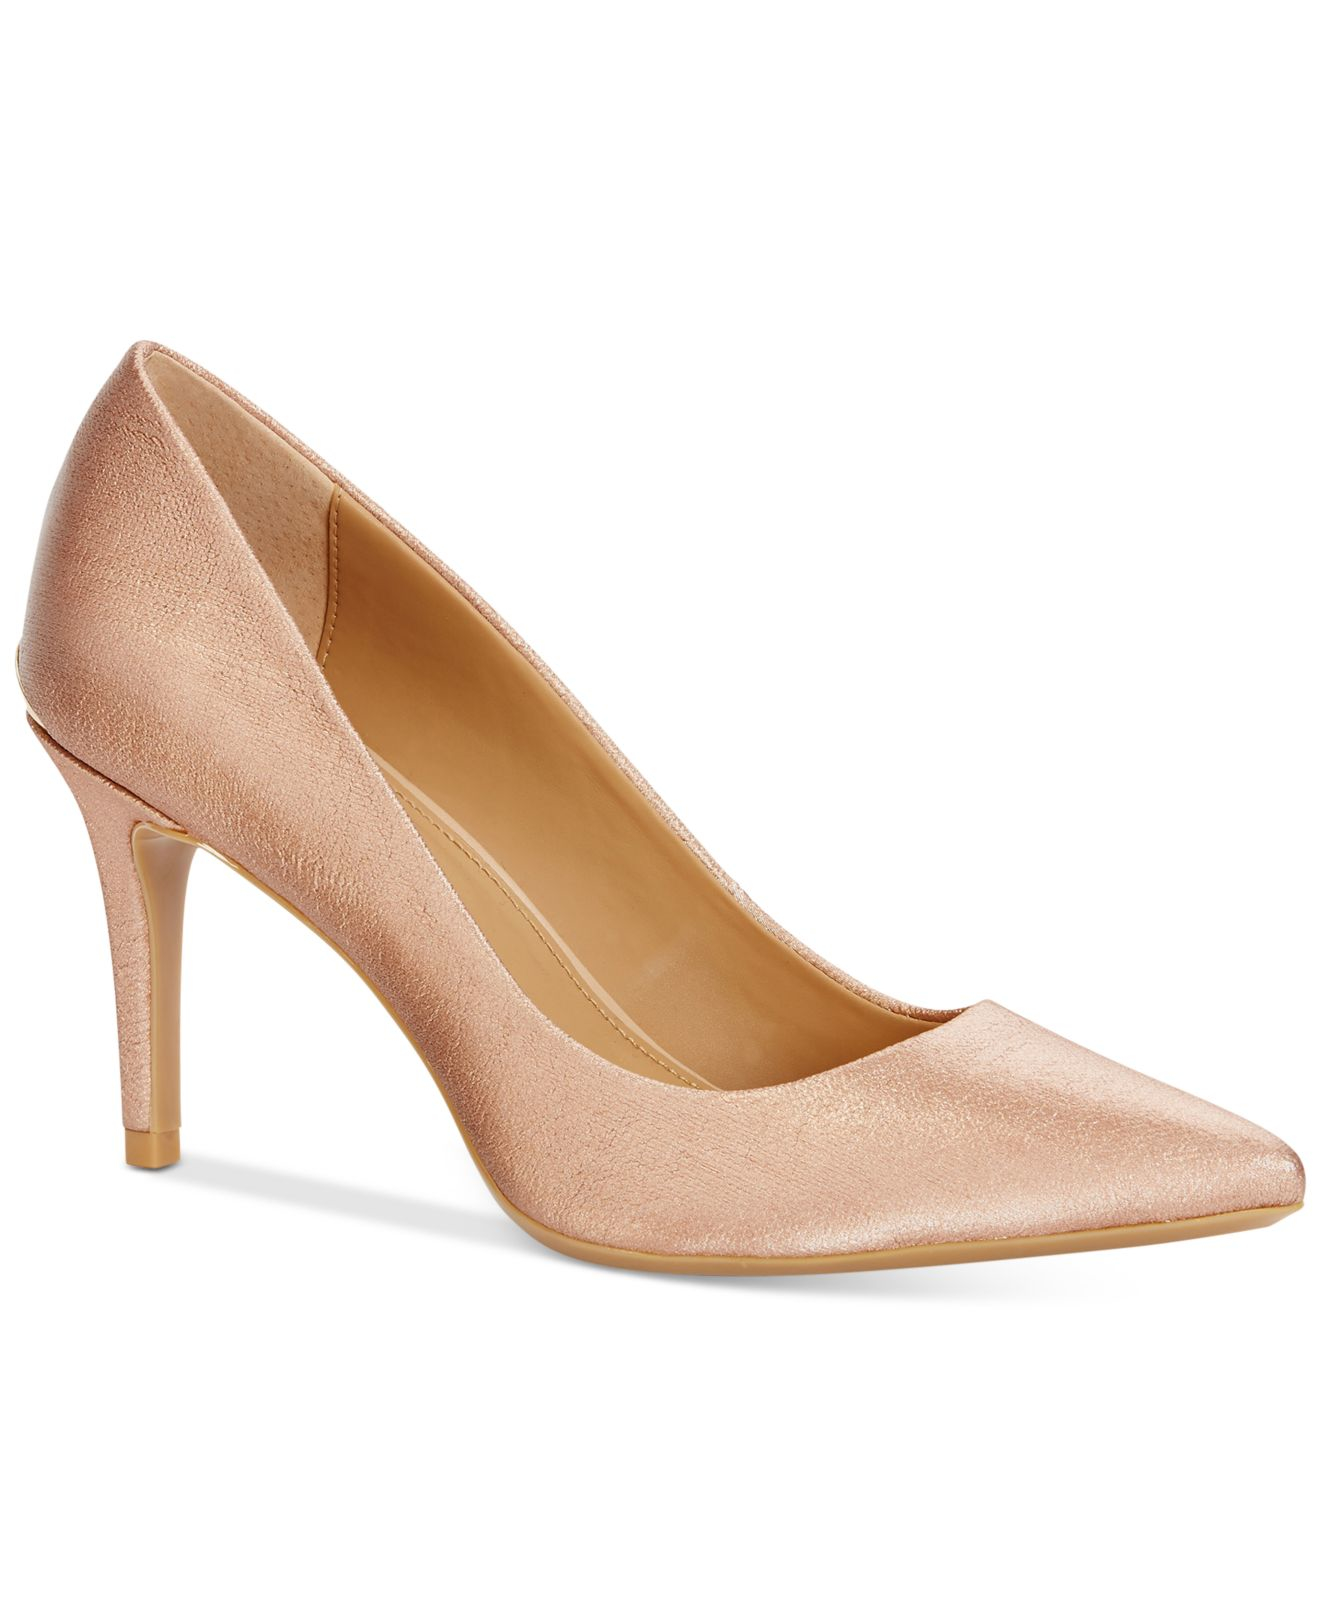 Gayle Textile Pointed-Toe Pumps QhE5ugv